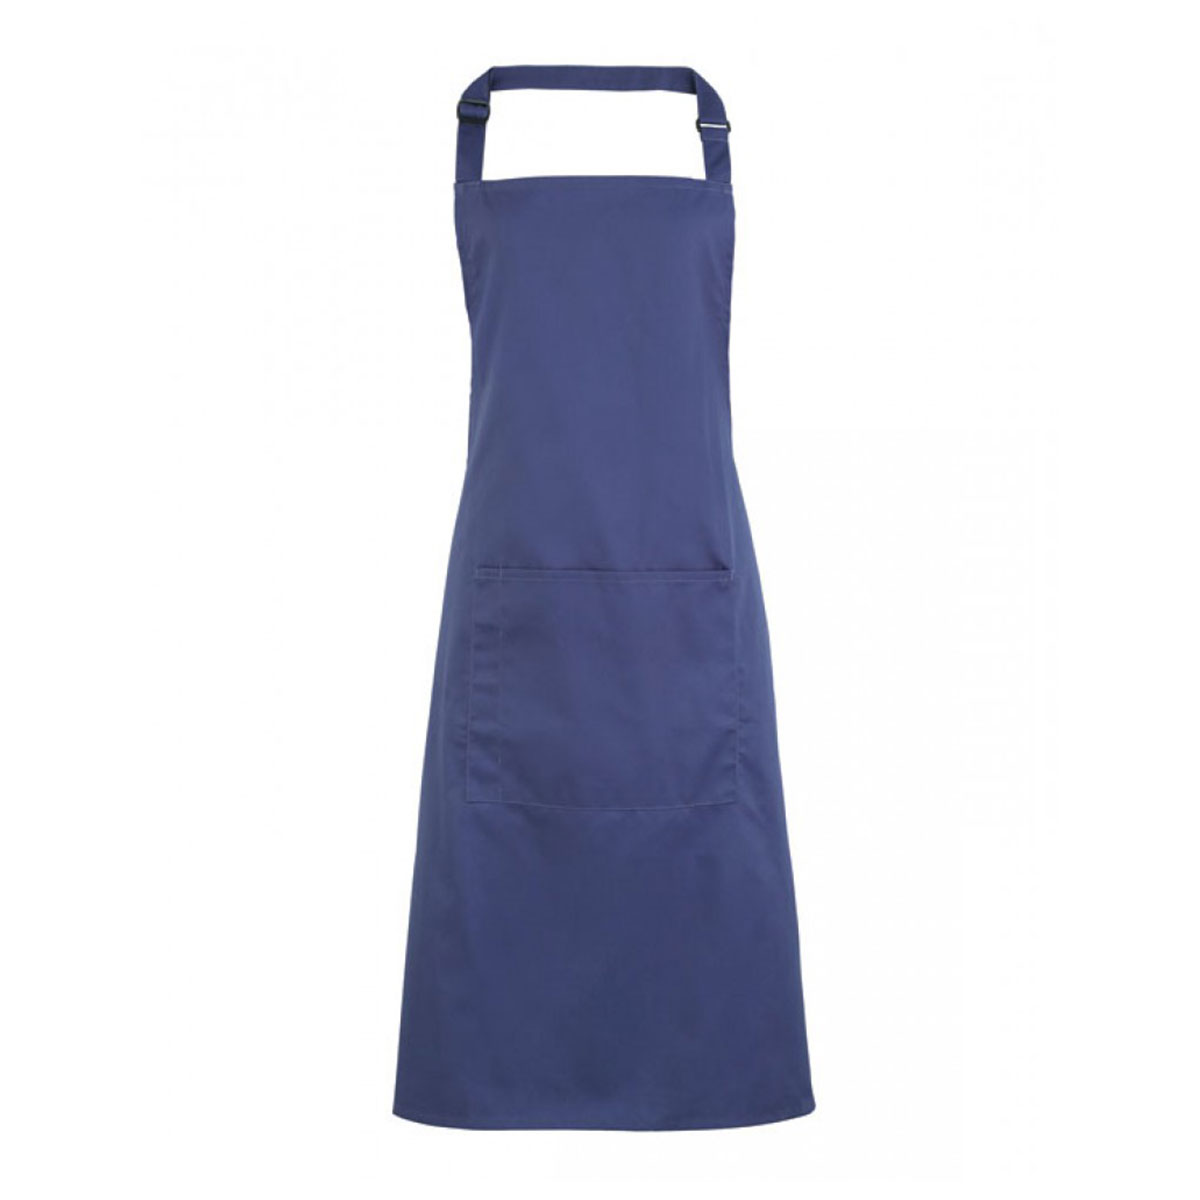 Colours Bib Apron with Pocket - pr154-marine-blue